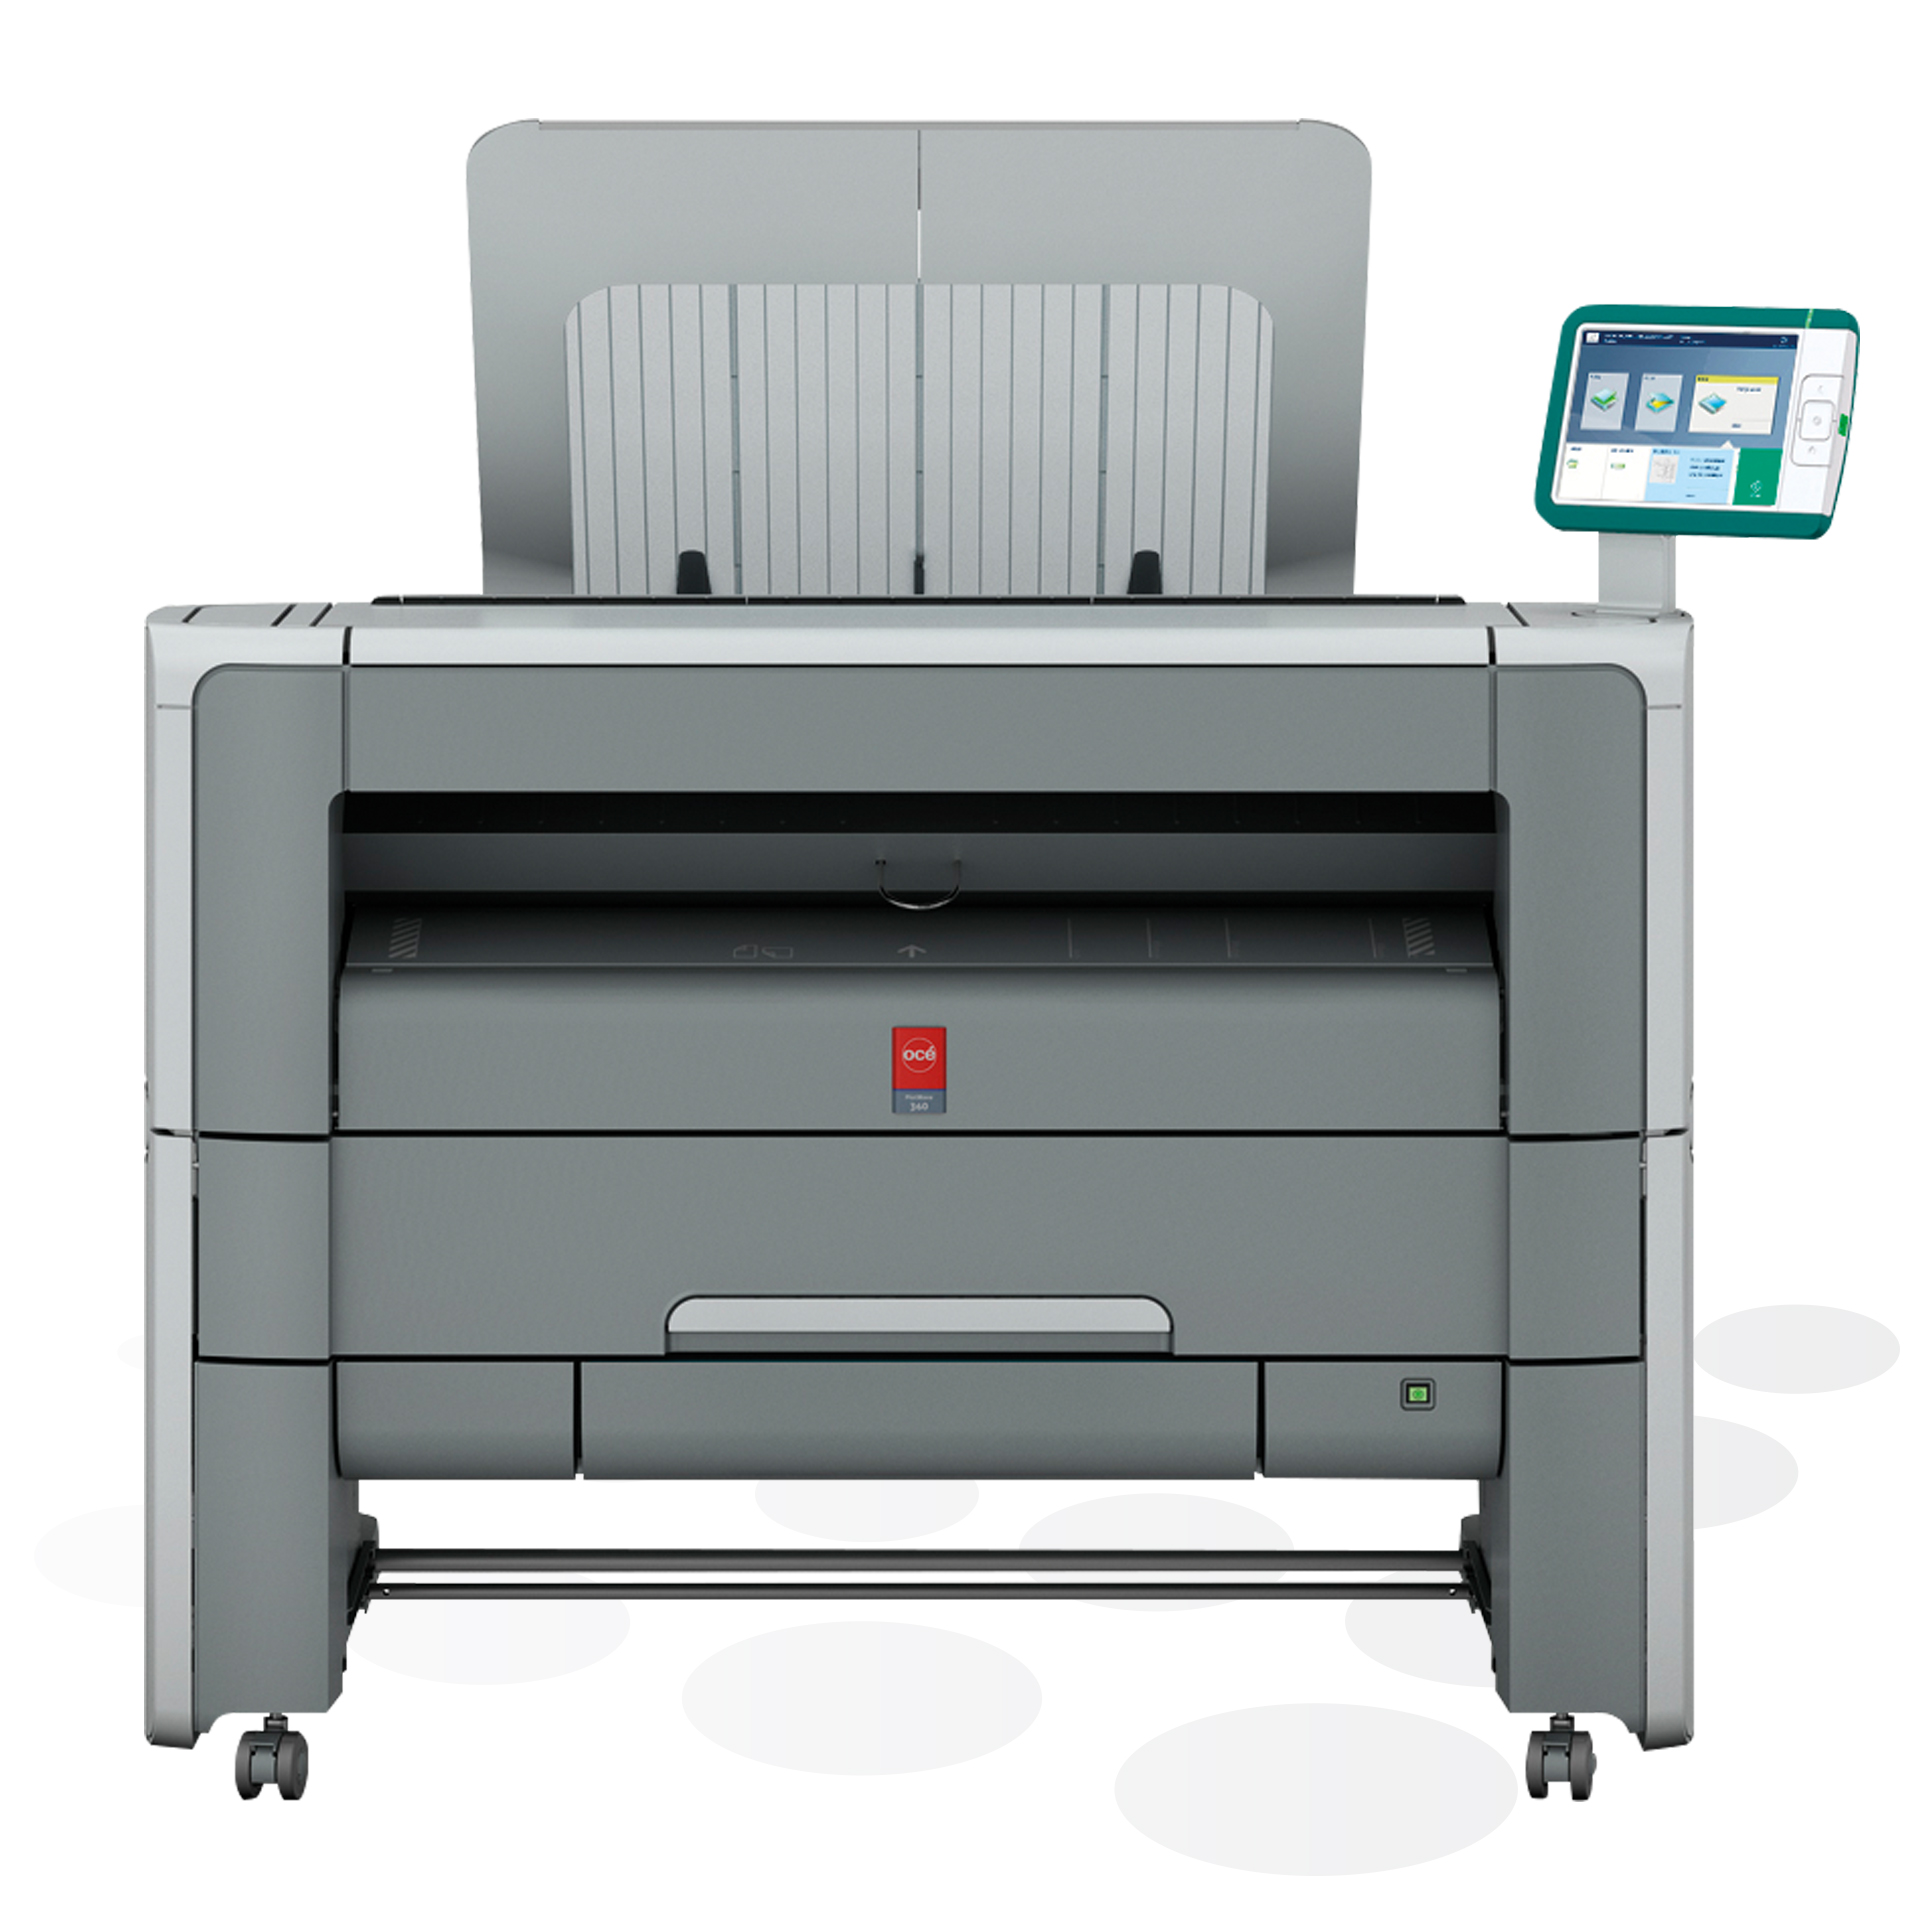 PlotWave 340/360 Printer